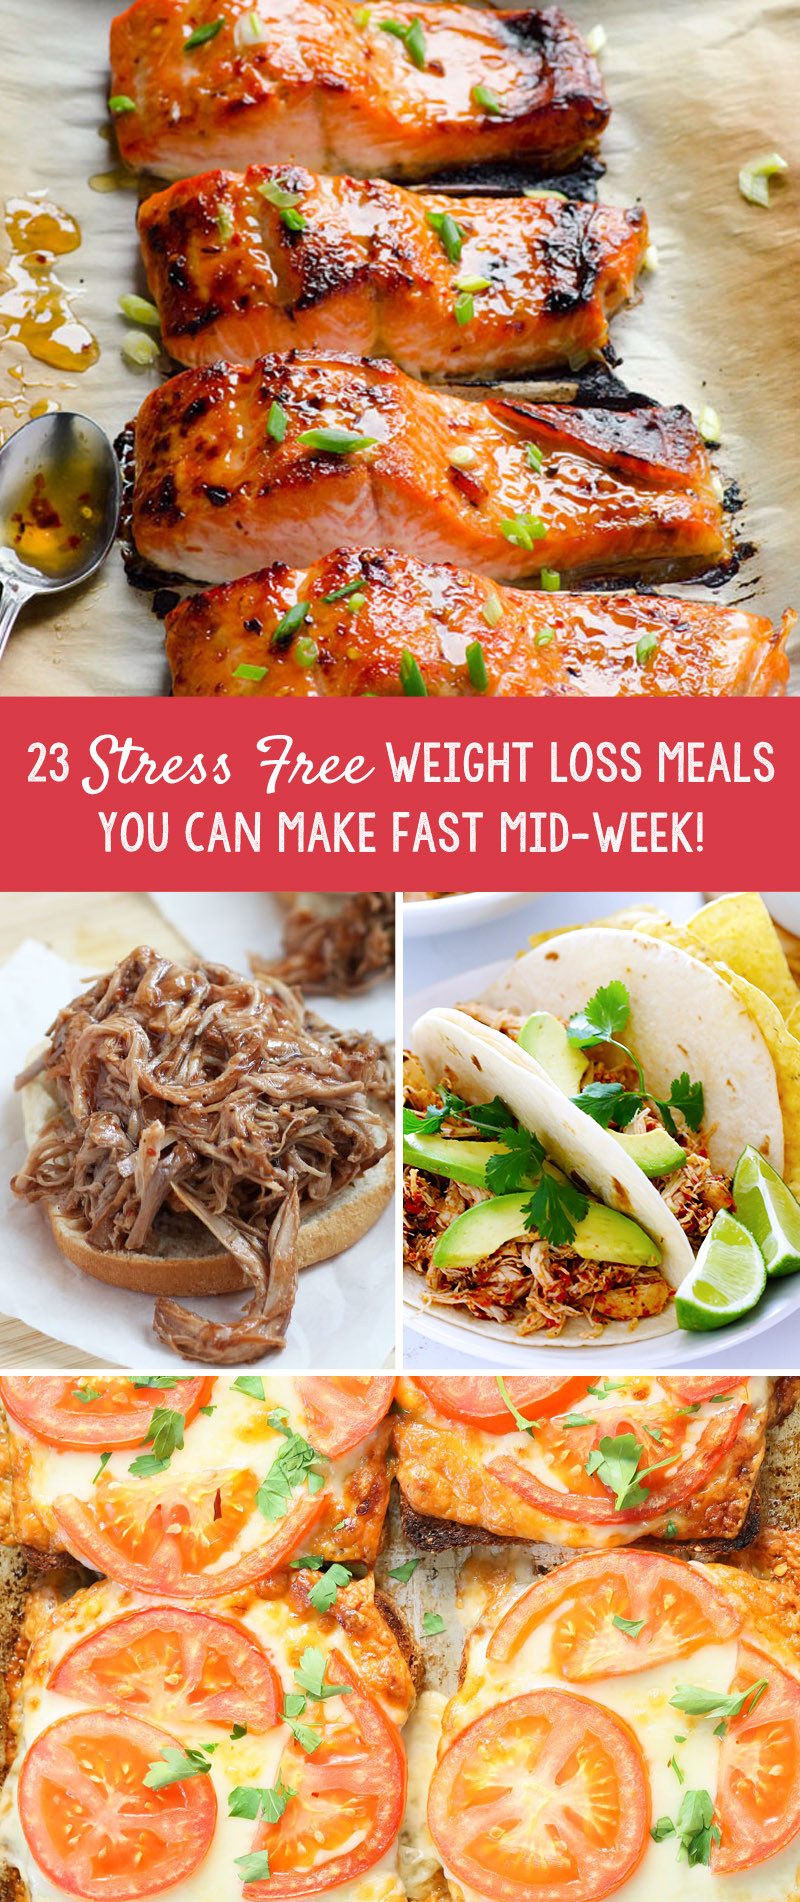 Healthy Weight Loss Dinners  23 Stress Free Weight Loss Meals You Can Make Fast Mid Week